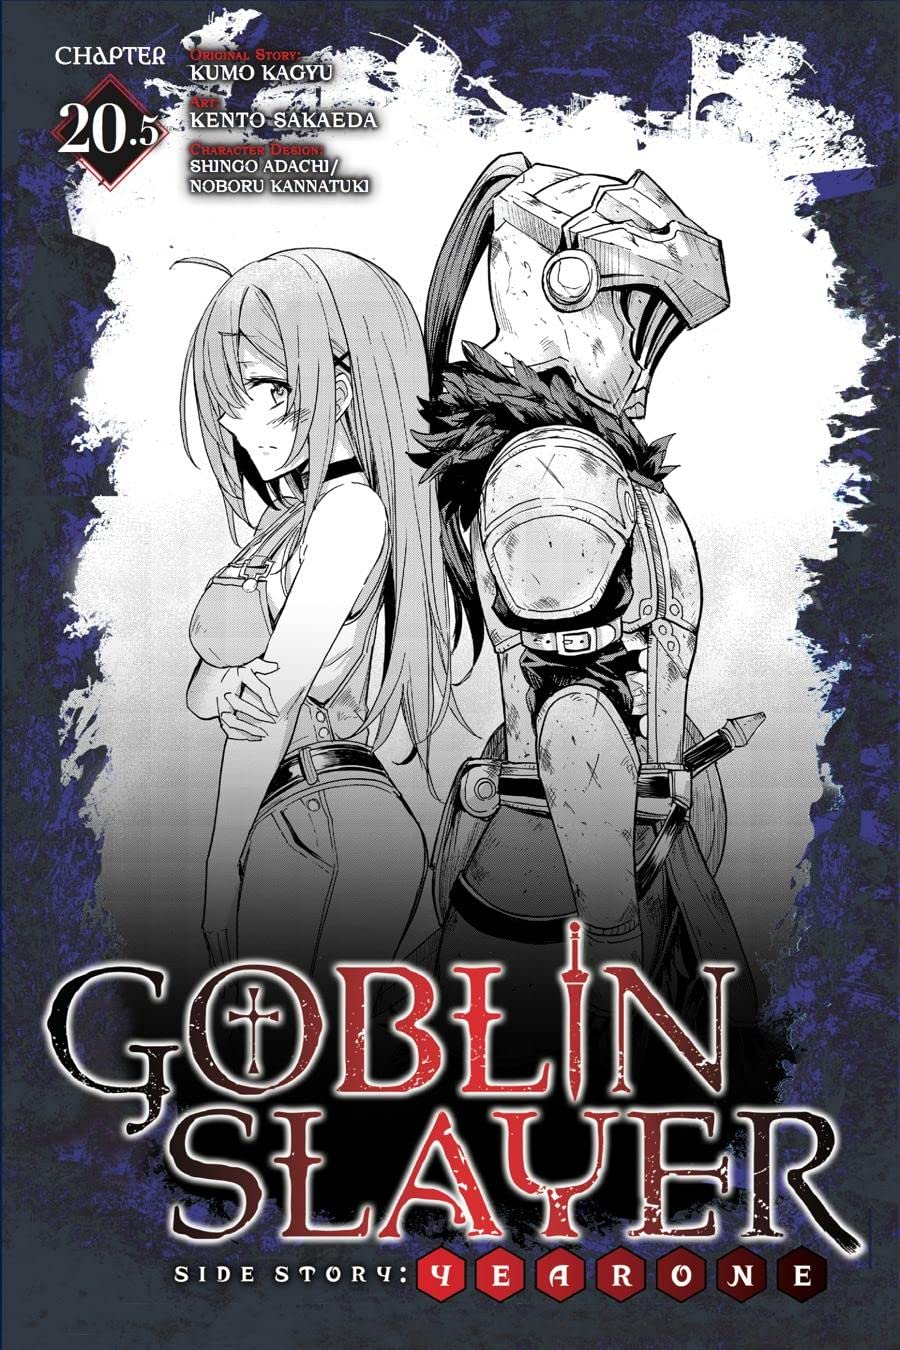 Goblin Slayer Side Story: Year One #20.5